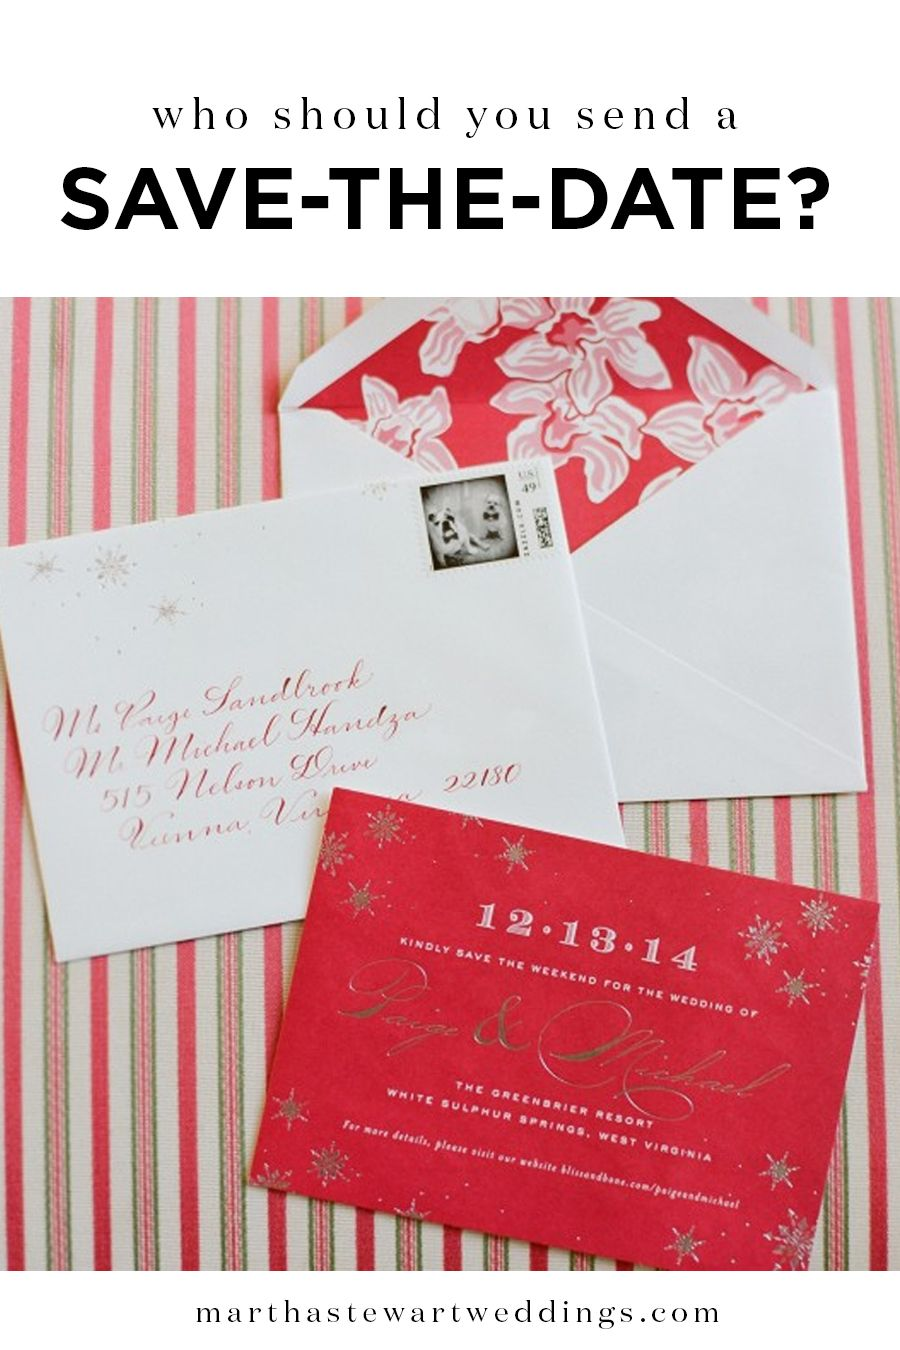 Who Should You Send a Save-the-Date? | Martha Stewart Weddings ...